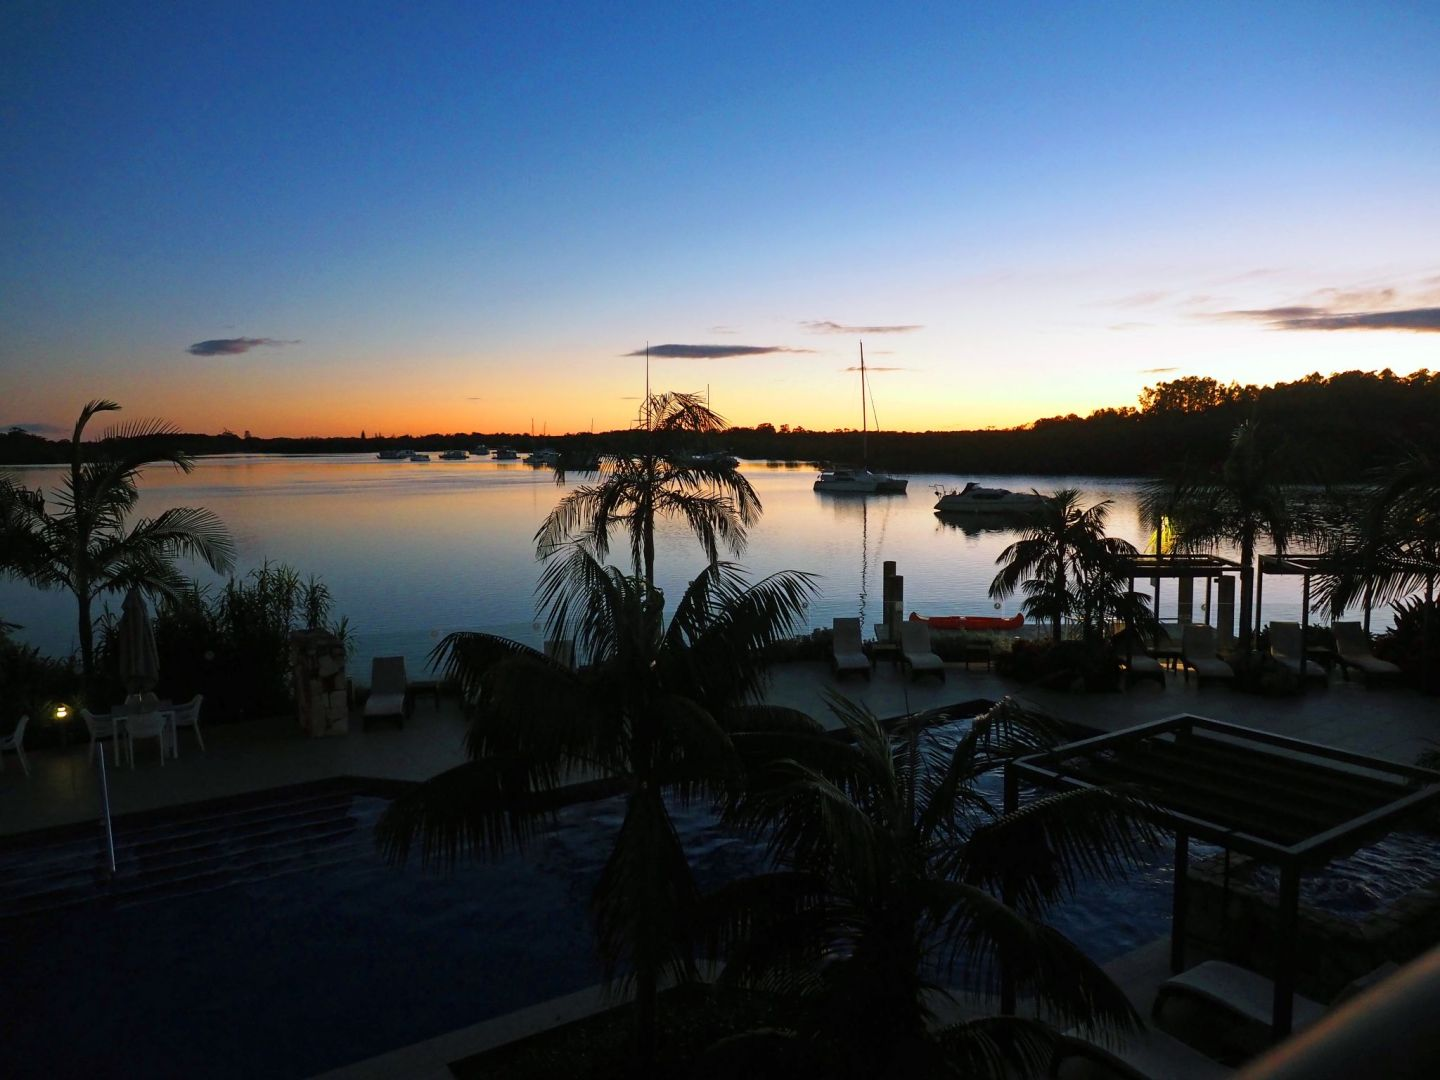 Dusk over pool at Sails Port Macquarie